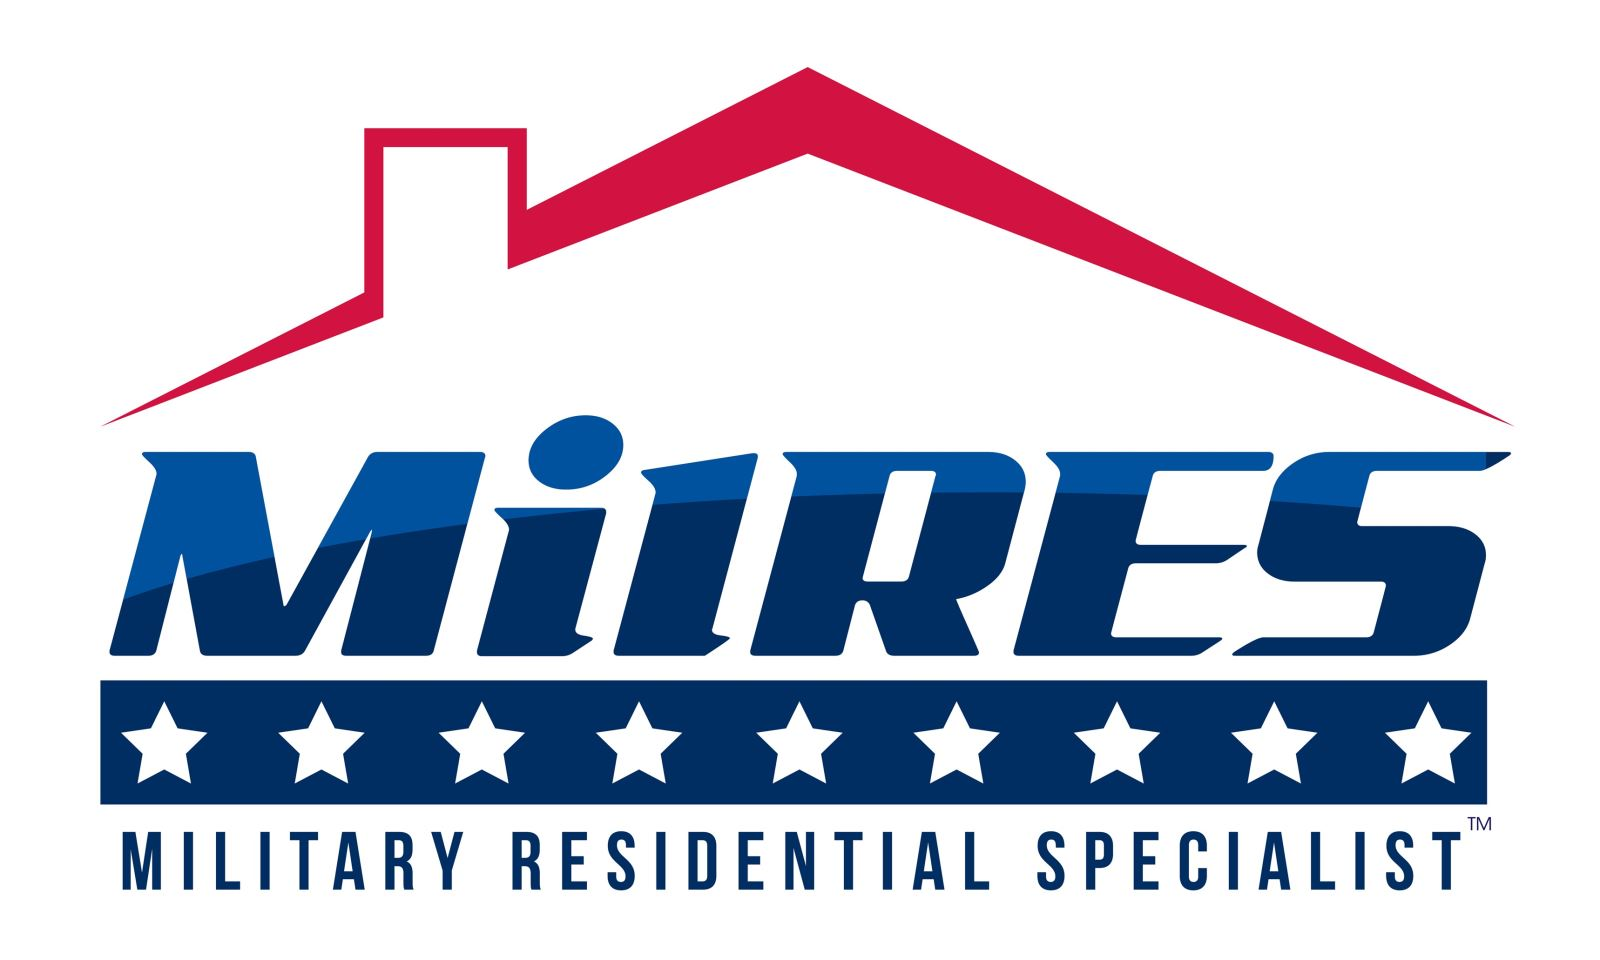 military residential specialist